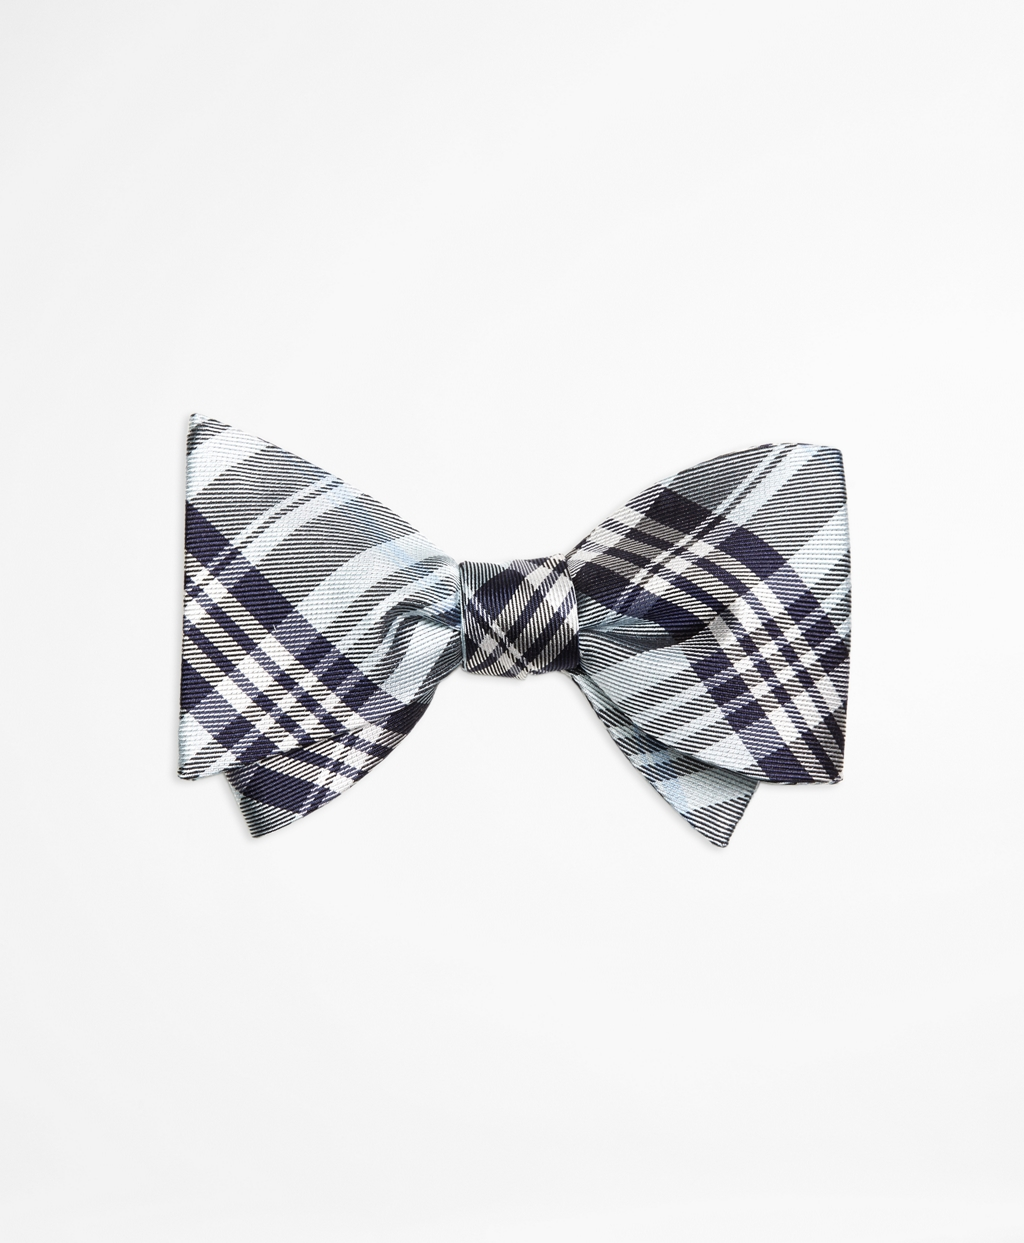 Lyst - Brooks brothers Plaid Bow Tie in Blue for Men